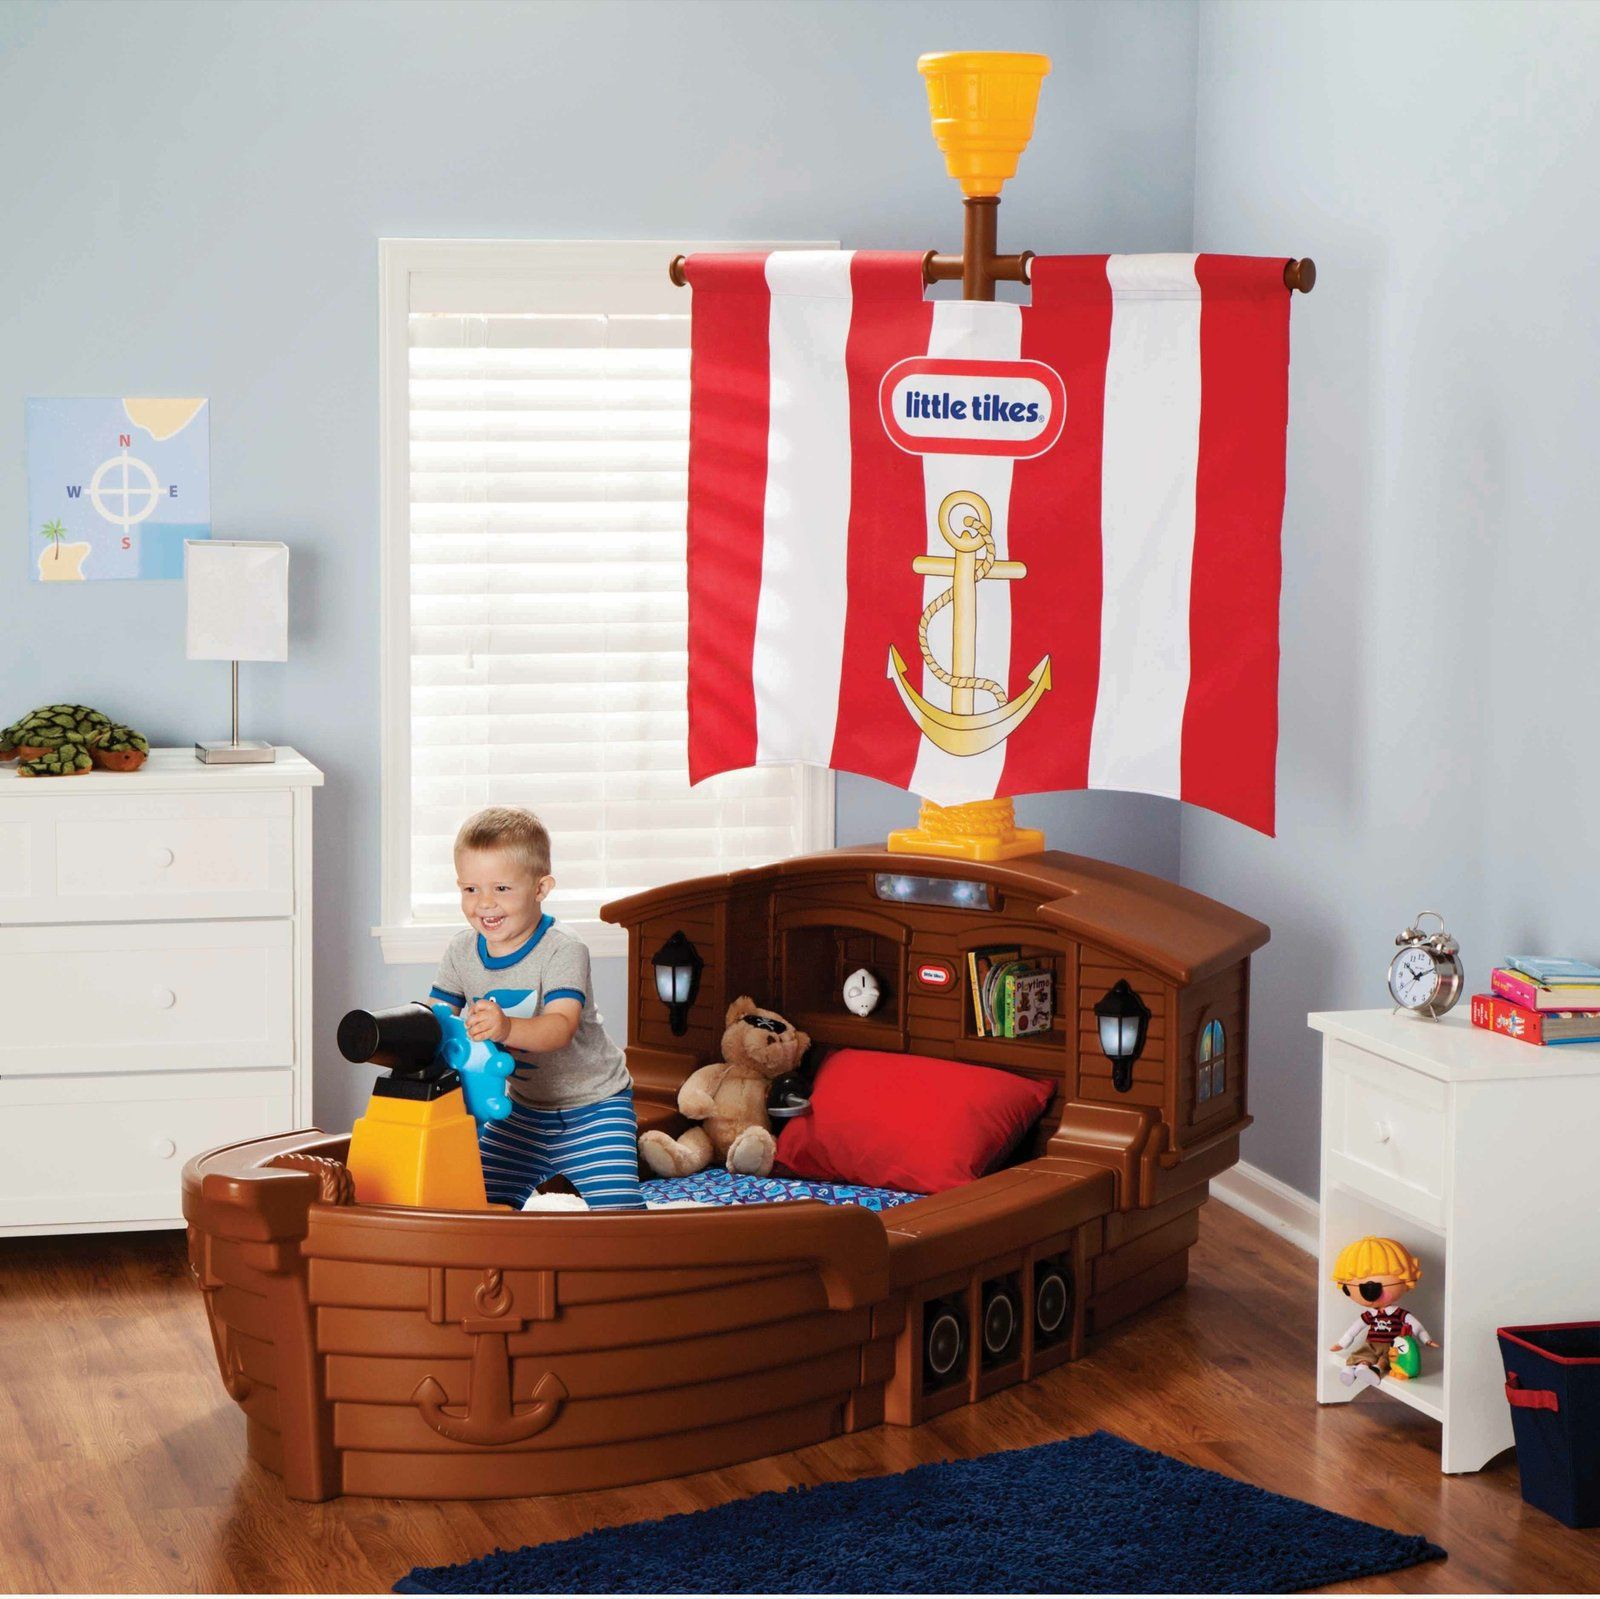 Pirate Ship Toddler Bed.Pirate Ship Toddler Bed Toddlers Will Have A Treasure Of A